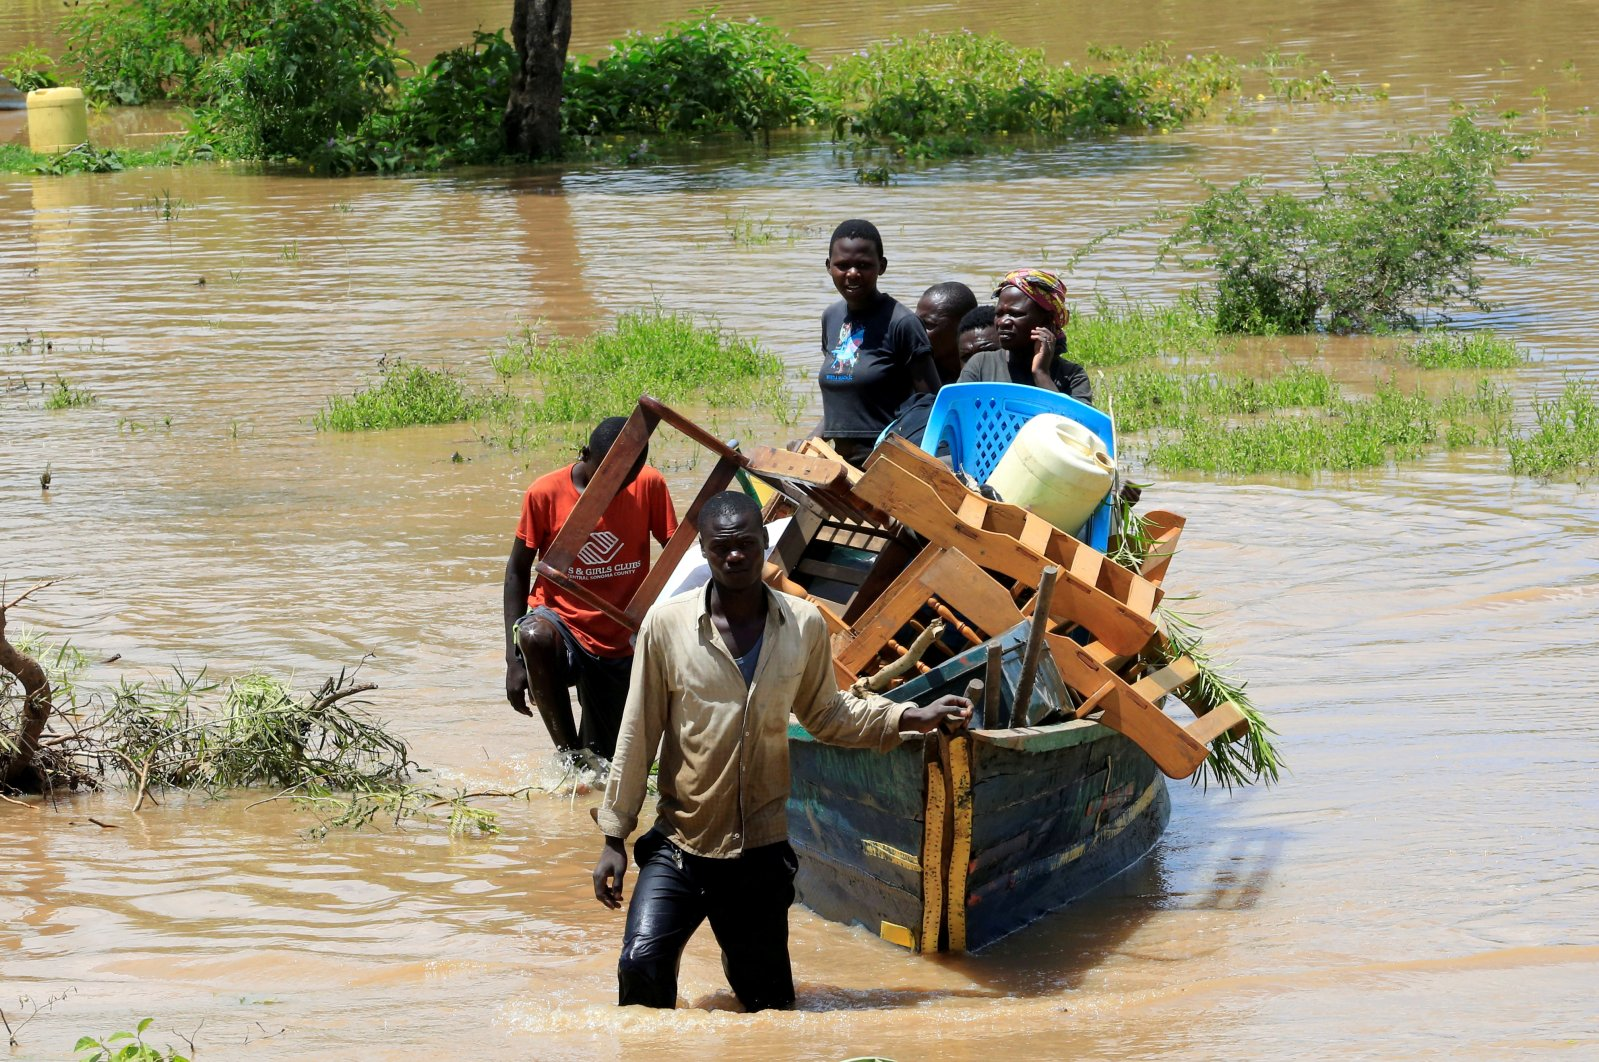 Residents use a boat to carry their belongings through the waters after their homes were flooded in Budalangi, in Busia County, Kenya, May 3, 2020. (Reuters Photo)